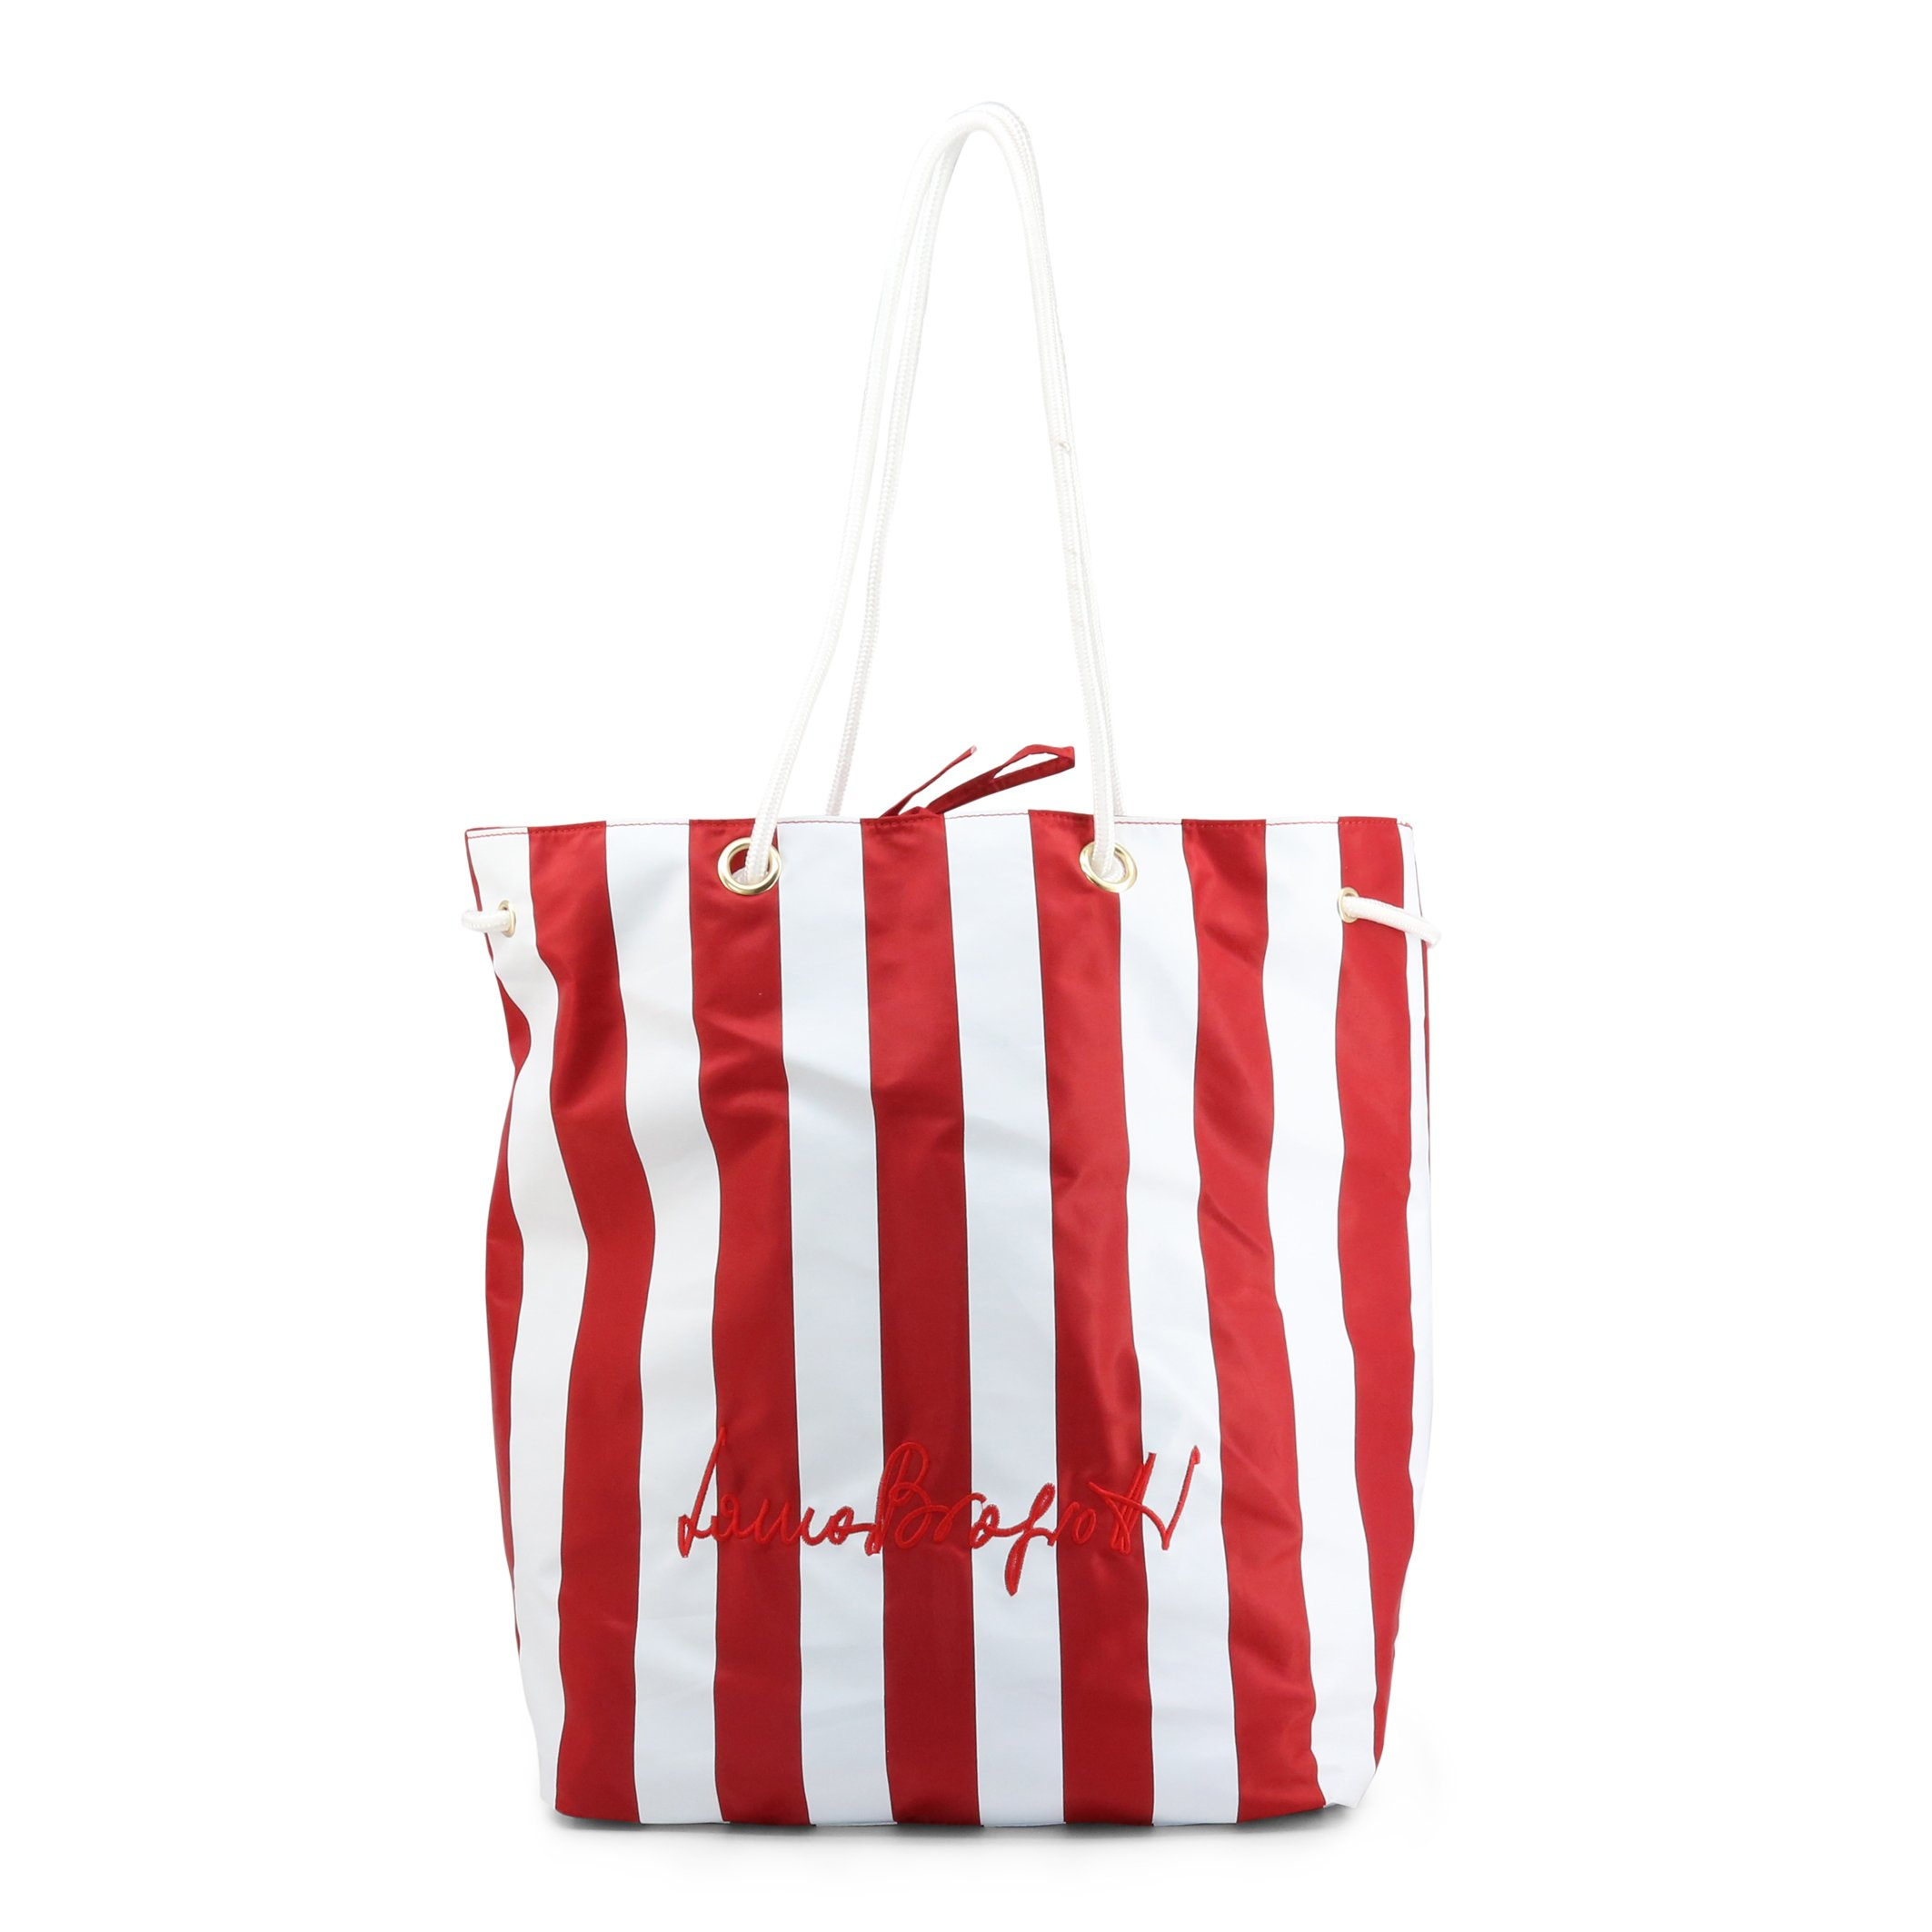 Laura Biagiotti Women's Shopping Bag Various Colours Eilish_259-2 - red NOSIZE